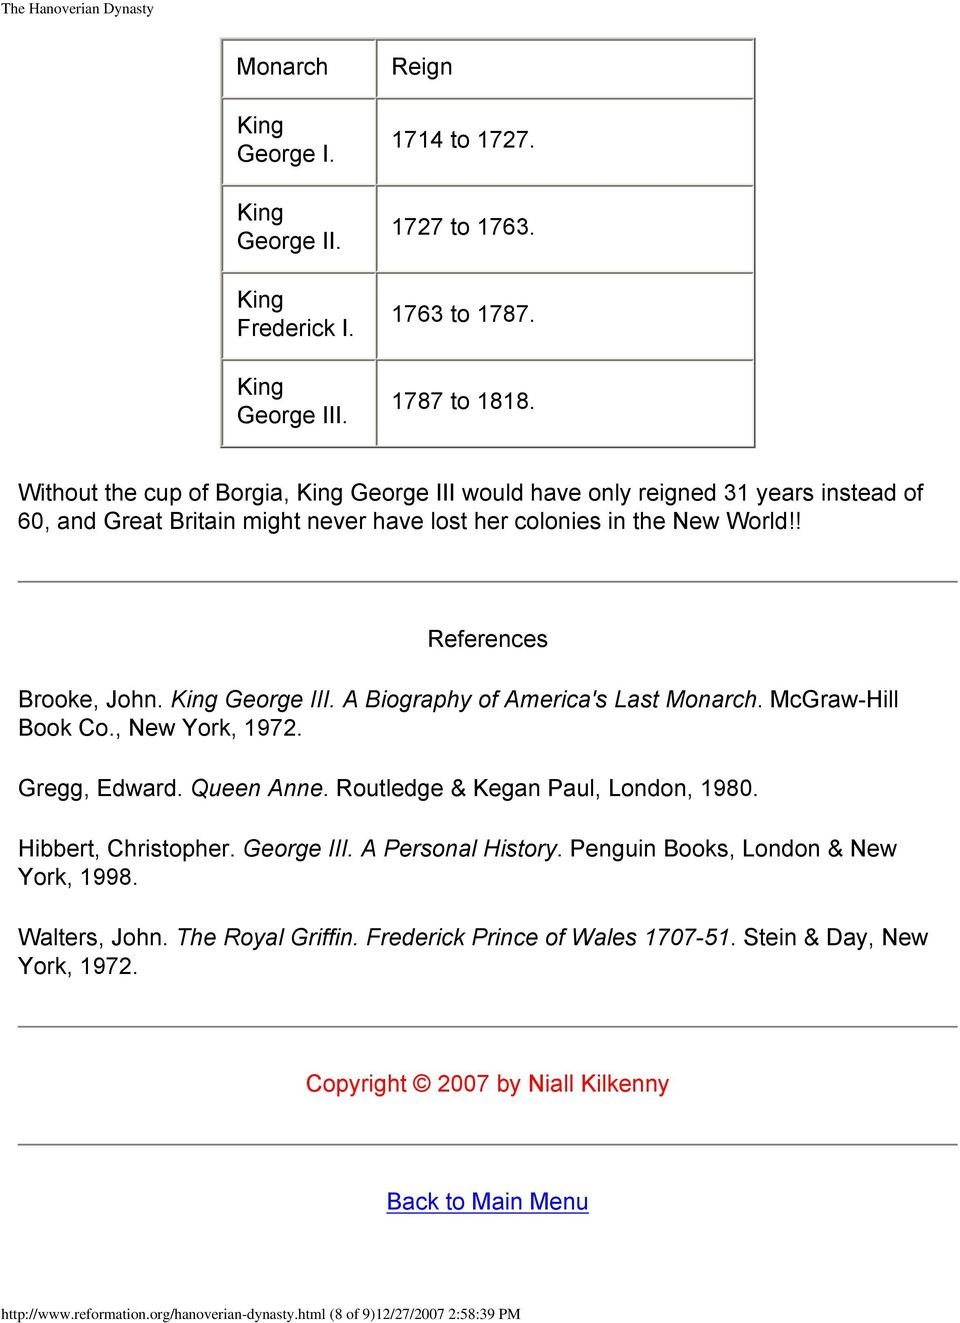 McGraw-Hill Book Co., New York, 1972. Gregg, Edward. Queen Anne. Routledge & Kegan Paul, London, 1980. Hibbert, Christopher. George III. A Personal History.